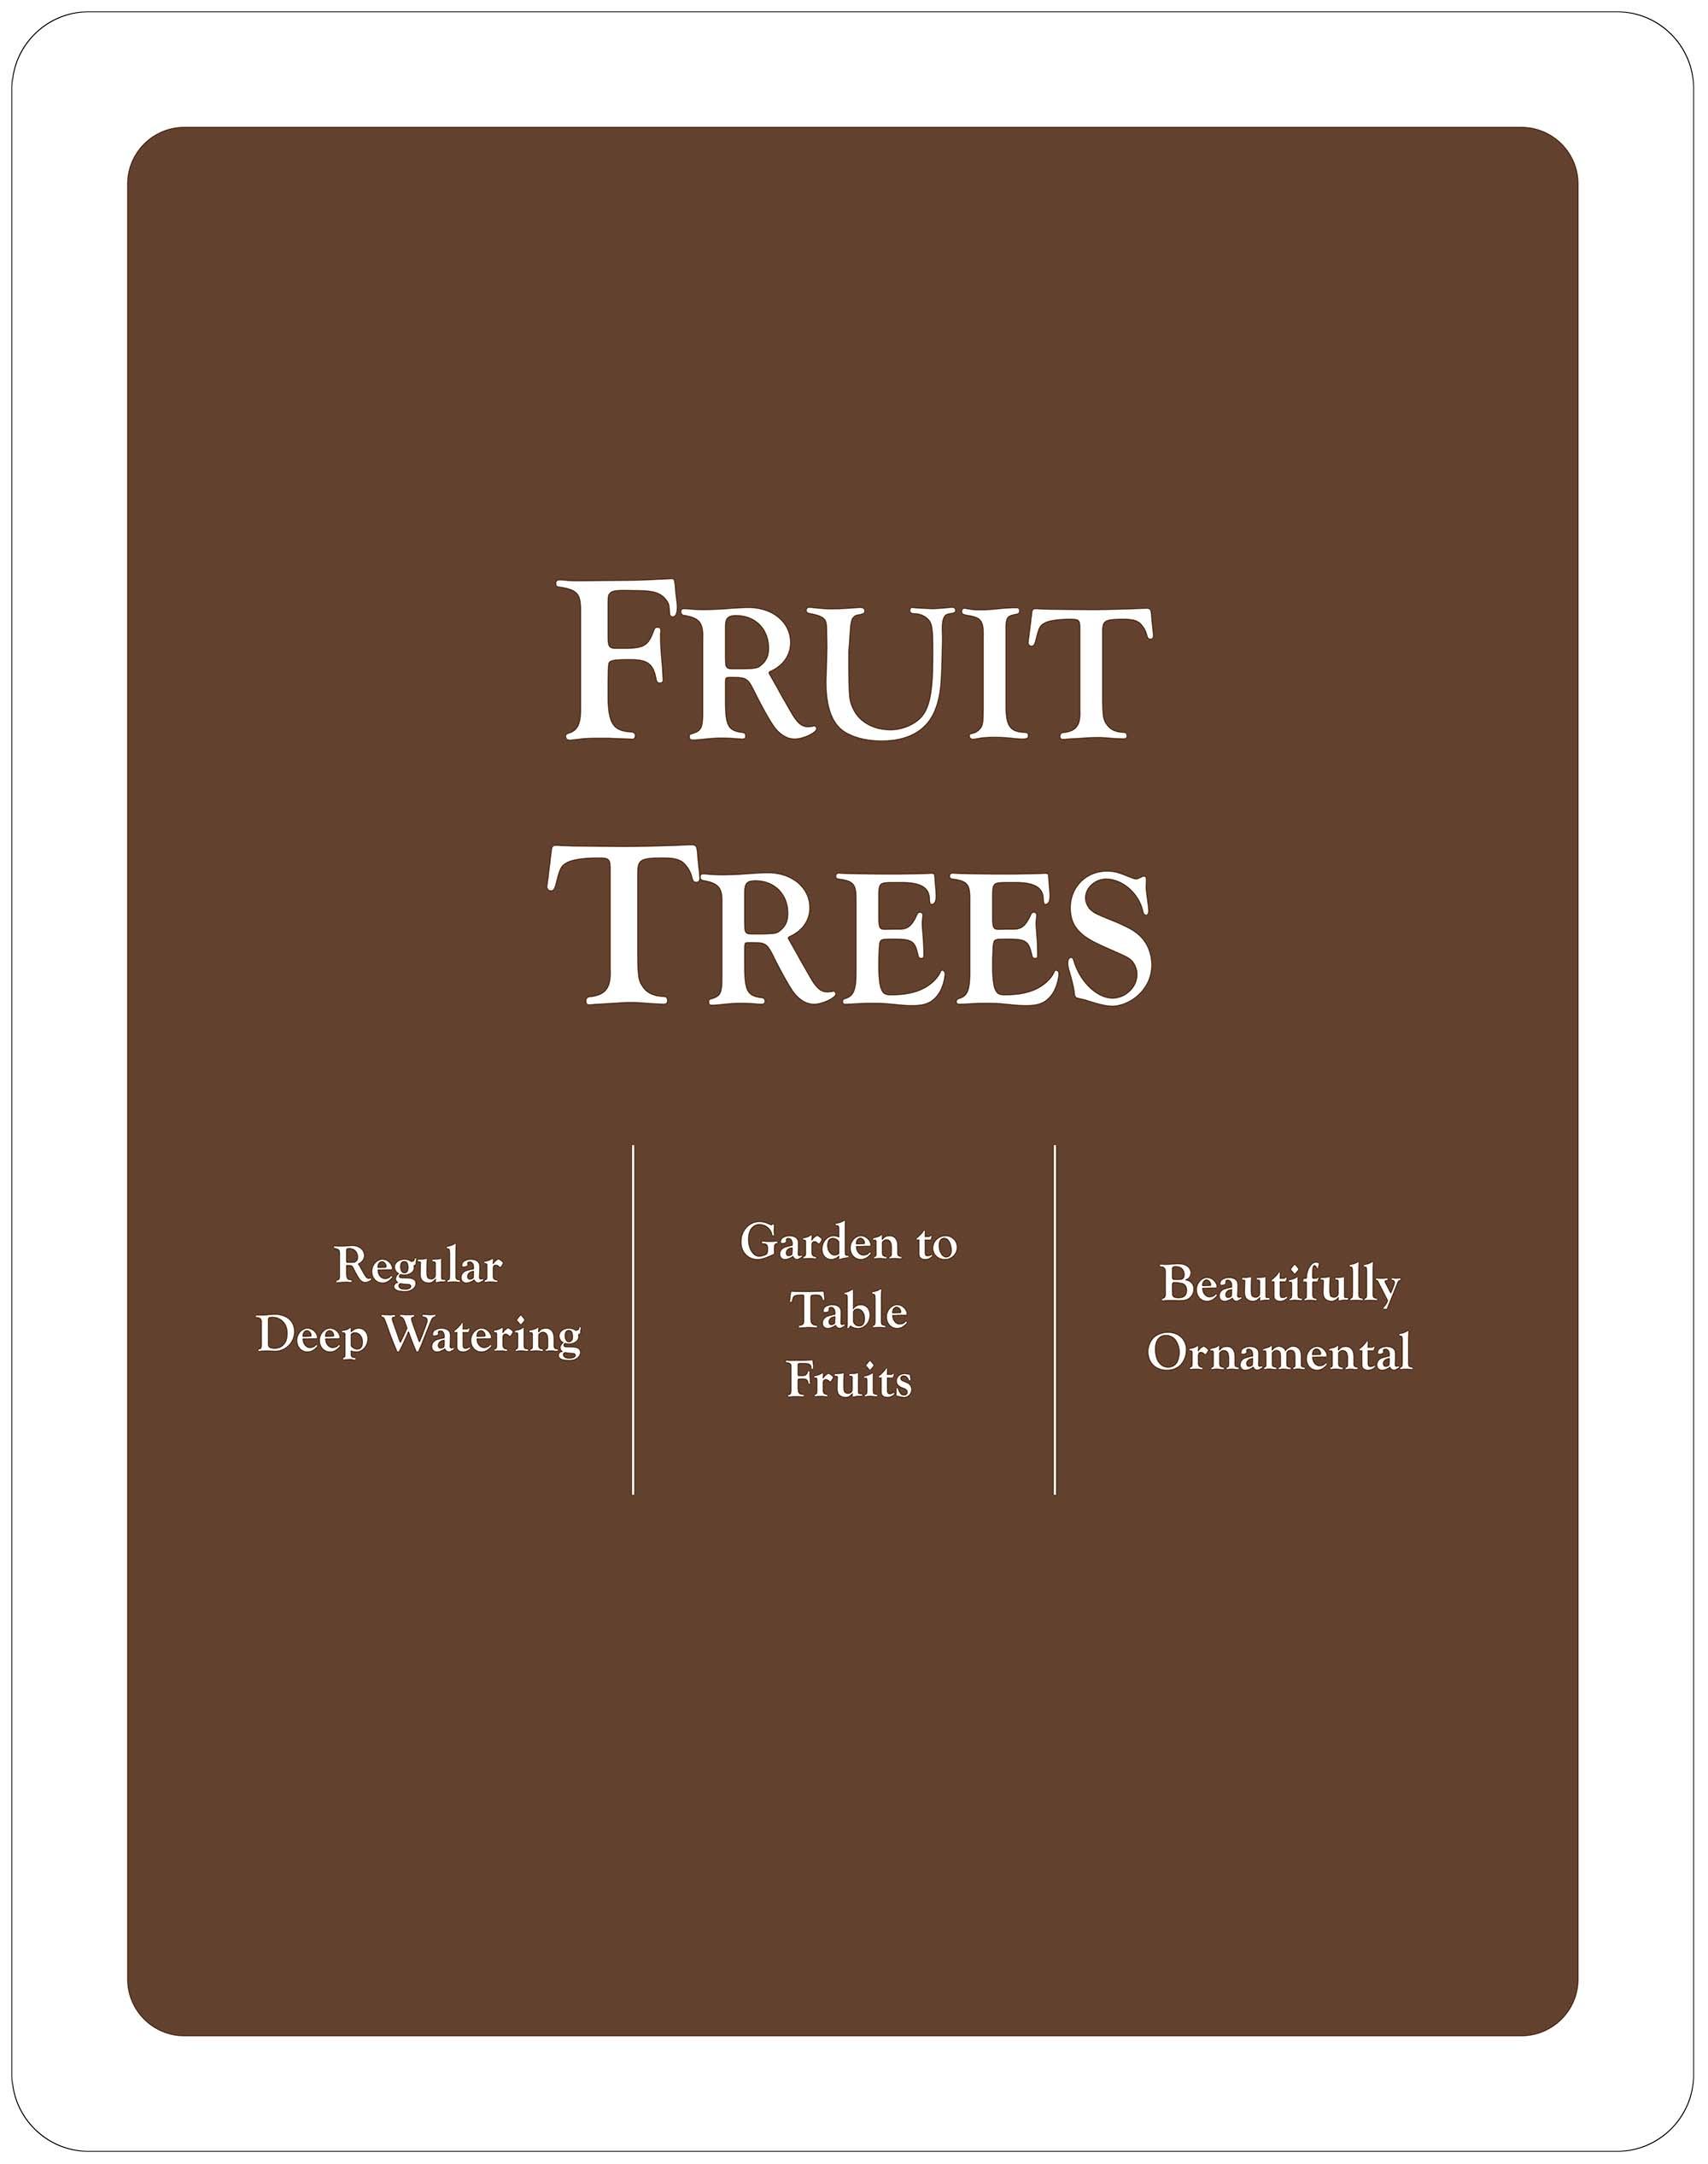 Fruit Trees-22x28